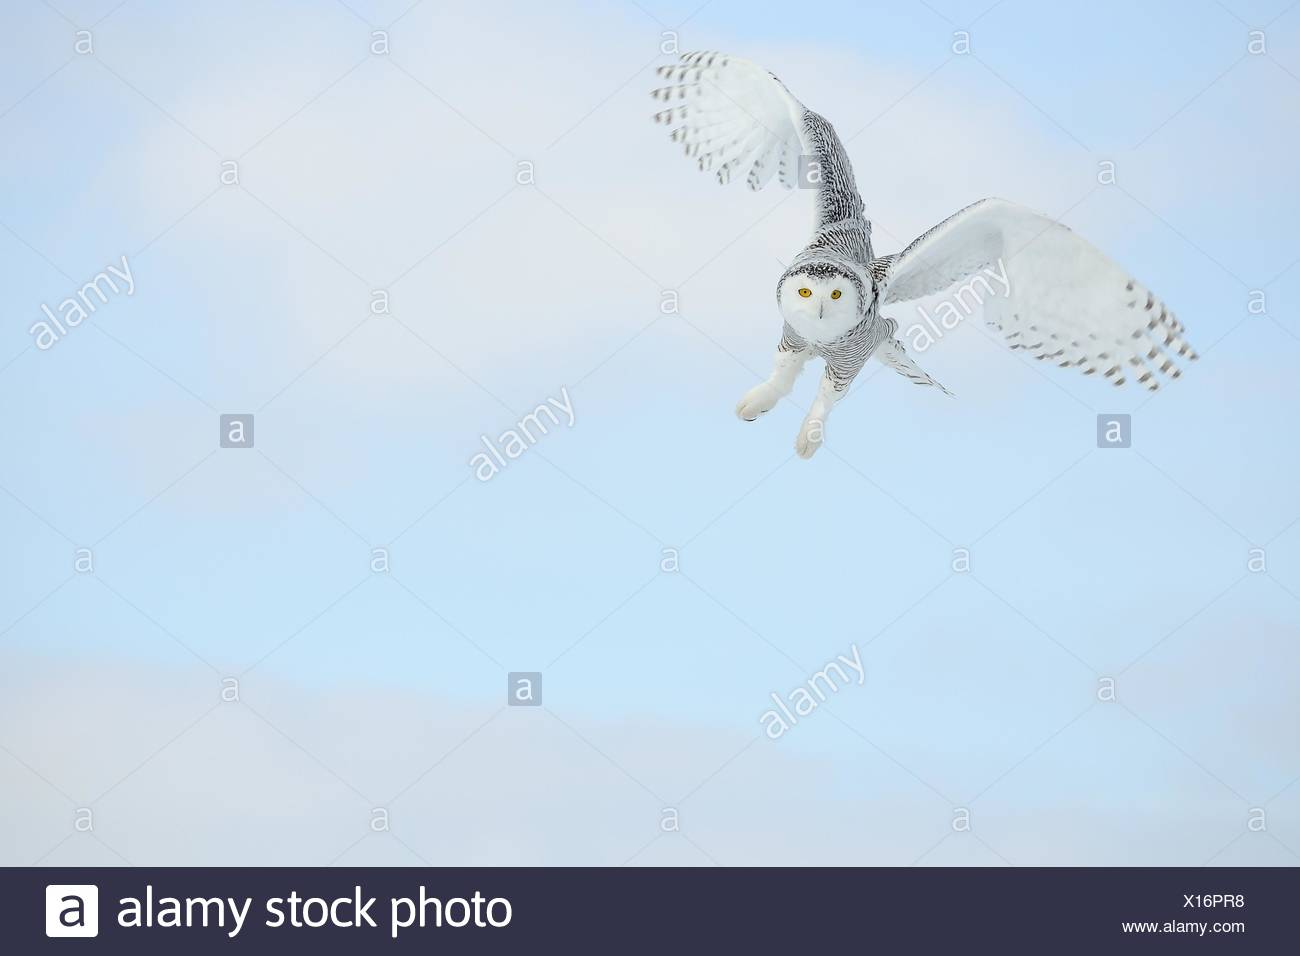 Owl Flying In The Sky, Mirabel, Canada - Stock Image